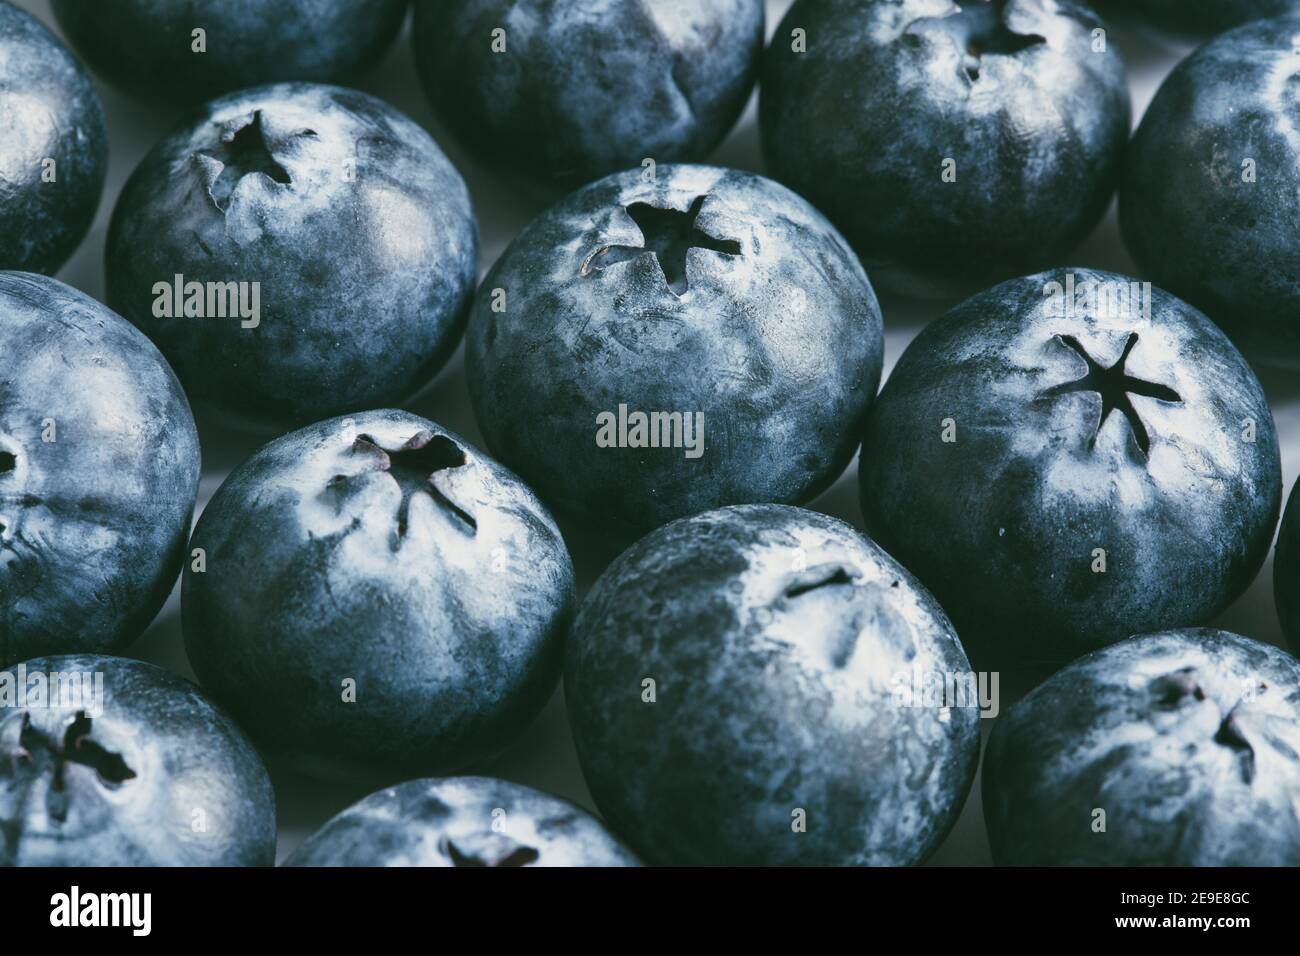 A full frame food fruit background of a close up of fresh, ripe blueberries packed together with copy space Stock Photo